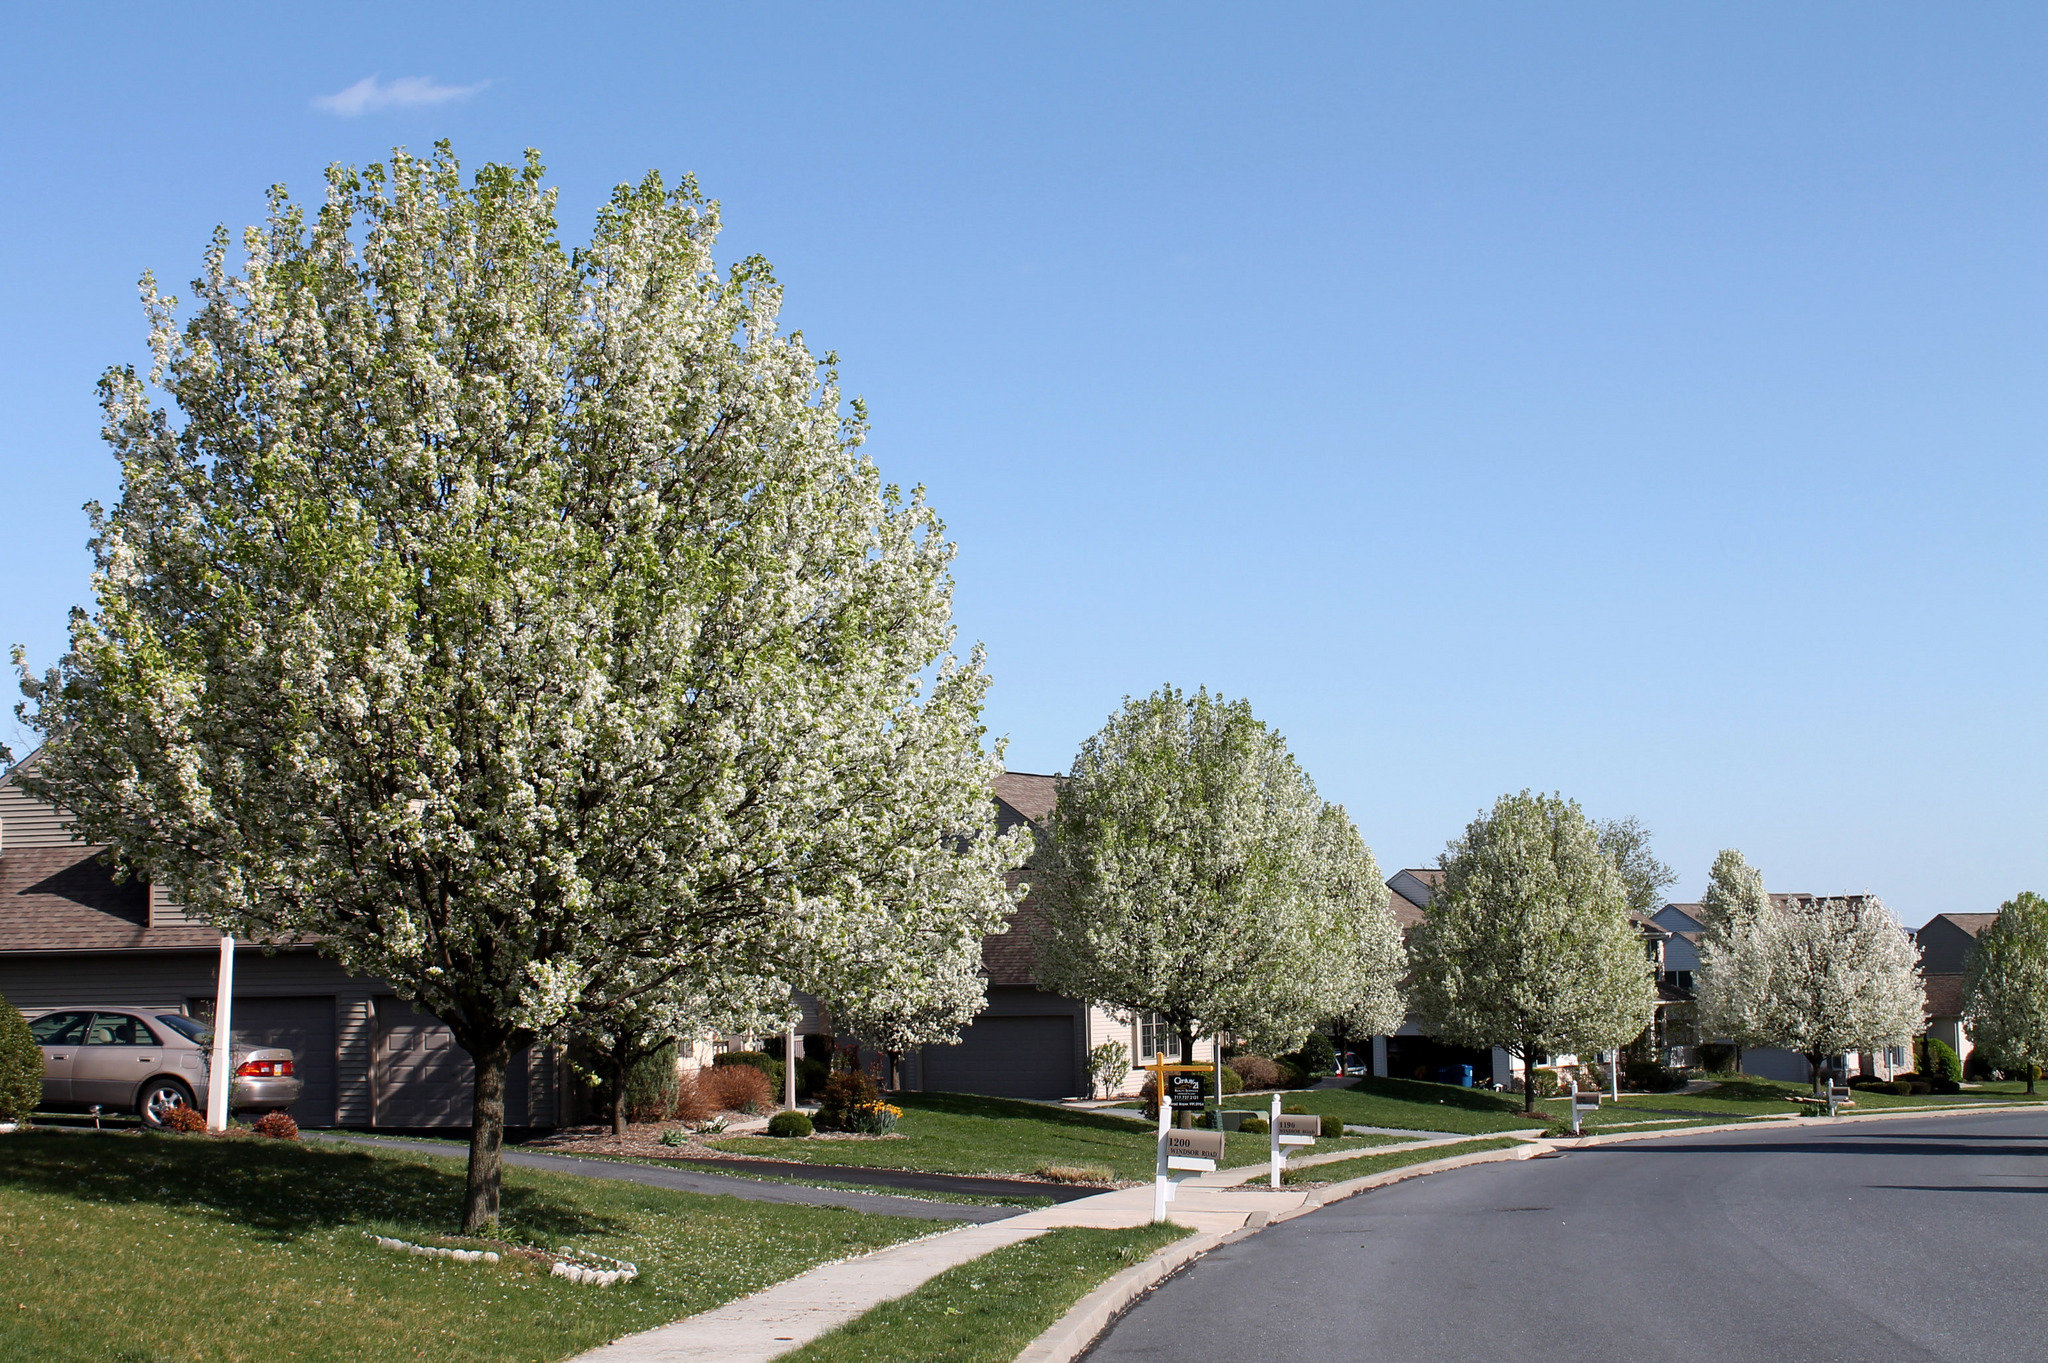 Gorgeous Can I Help Lagging Pear Trees Grow By Fertilizing Gardening Can I Help Lagging Pear Trees Grow By Fertilizing Gardening Cleveland Select Pear Tree Watering Cleveland Select Pear Tree Height houzz-03 Cleveland Select Pear